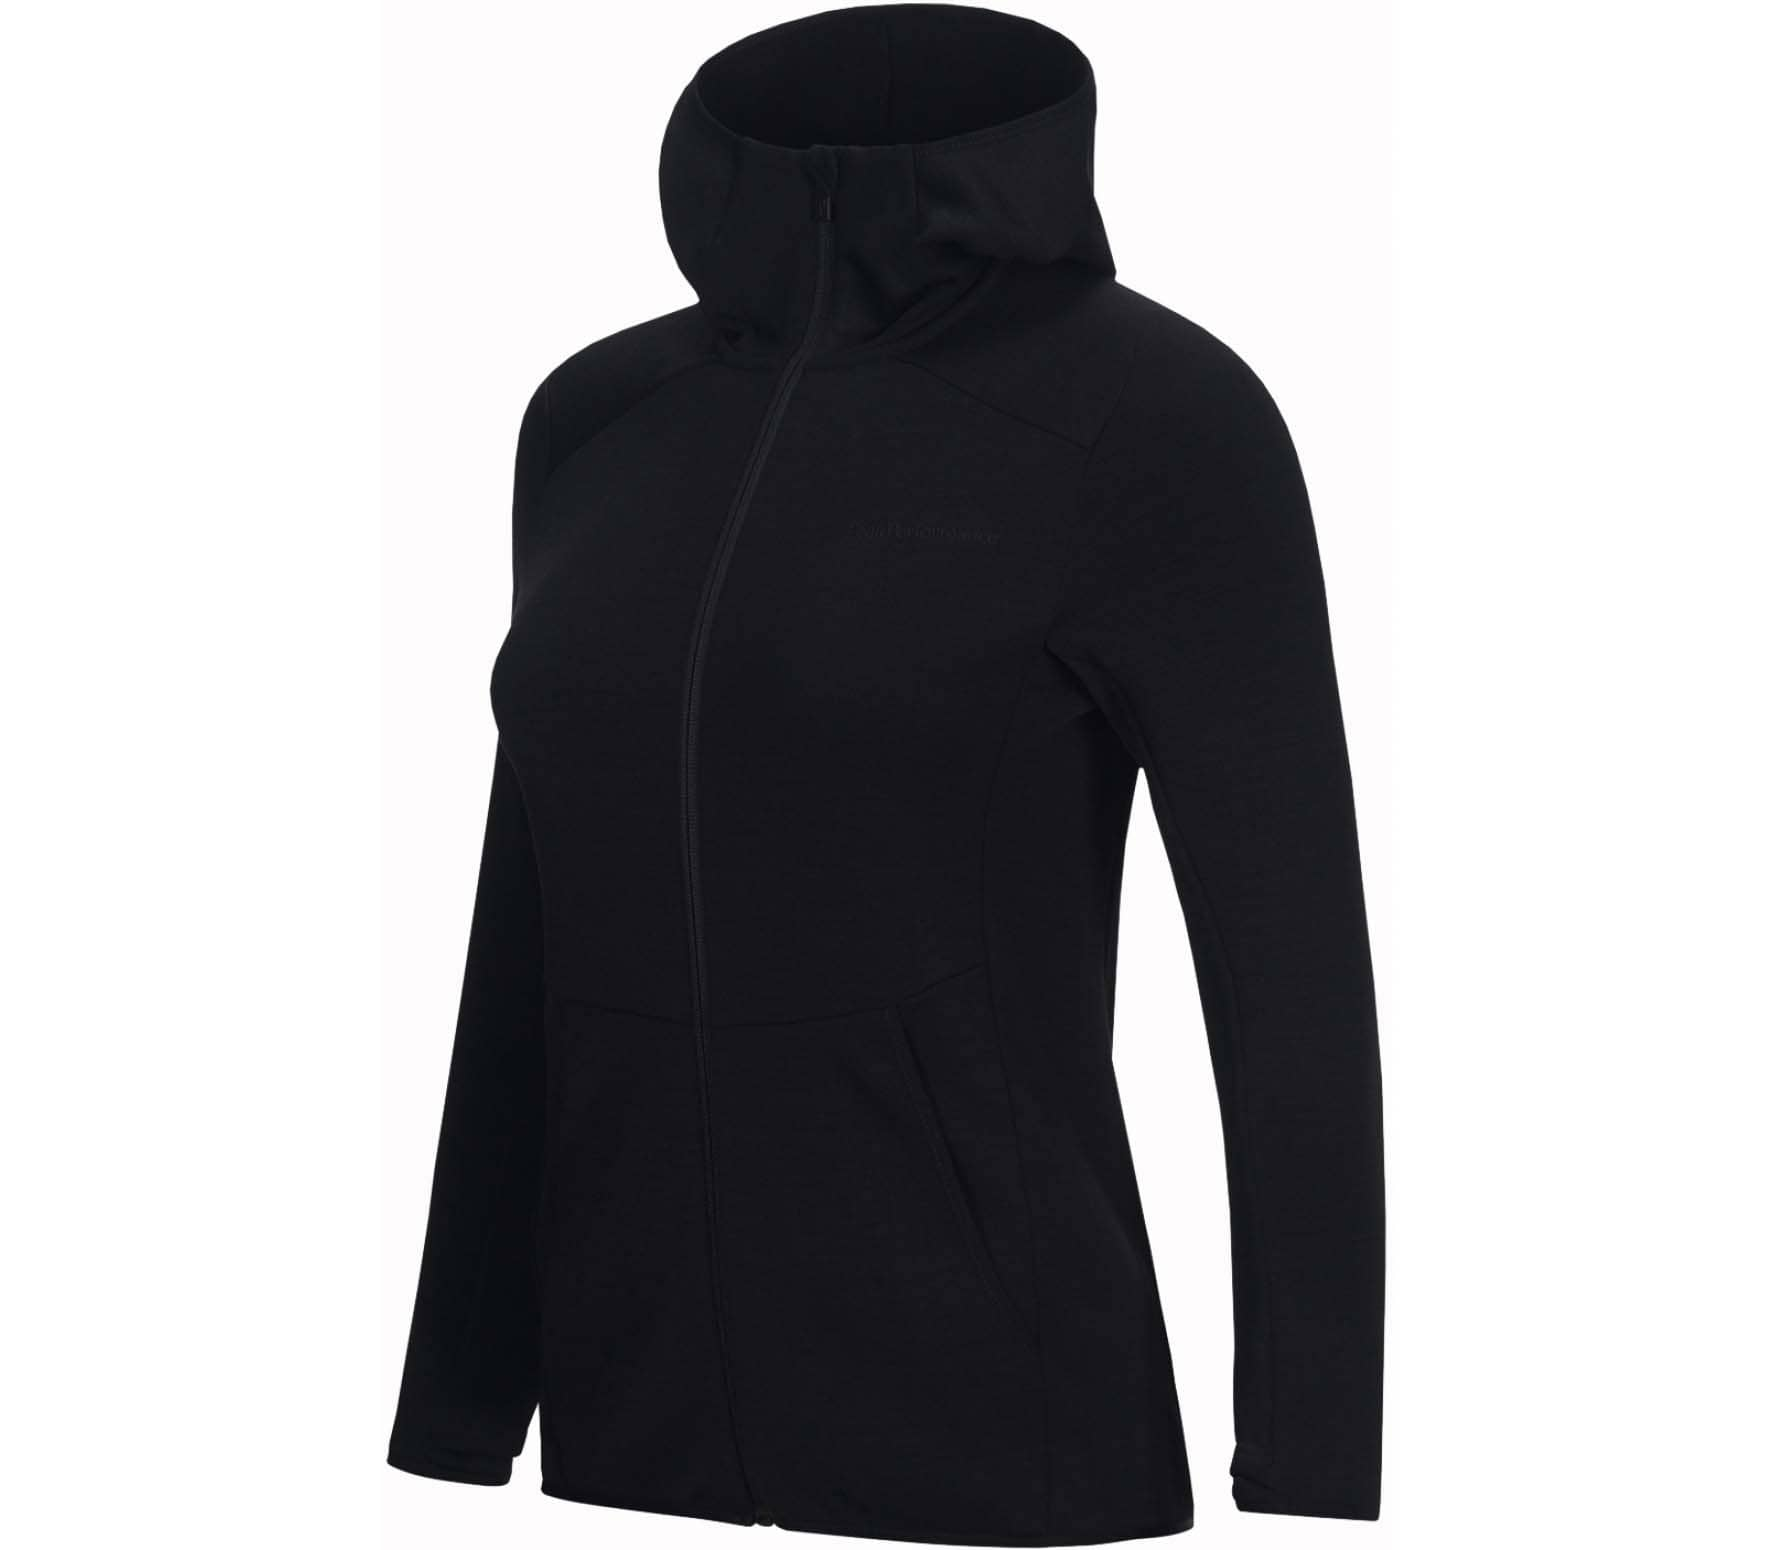 Peak Performance - Helo women's Powerstretch jacket (black)